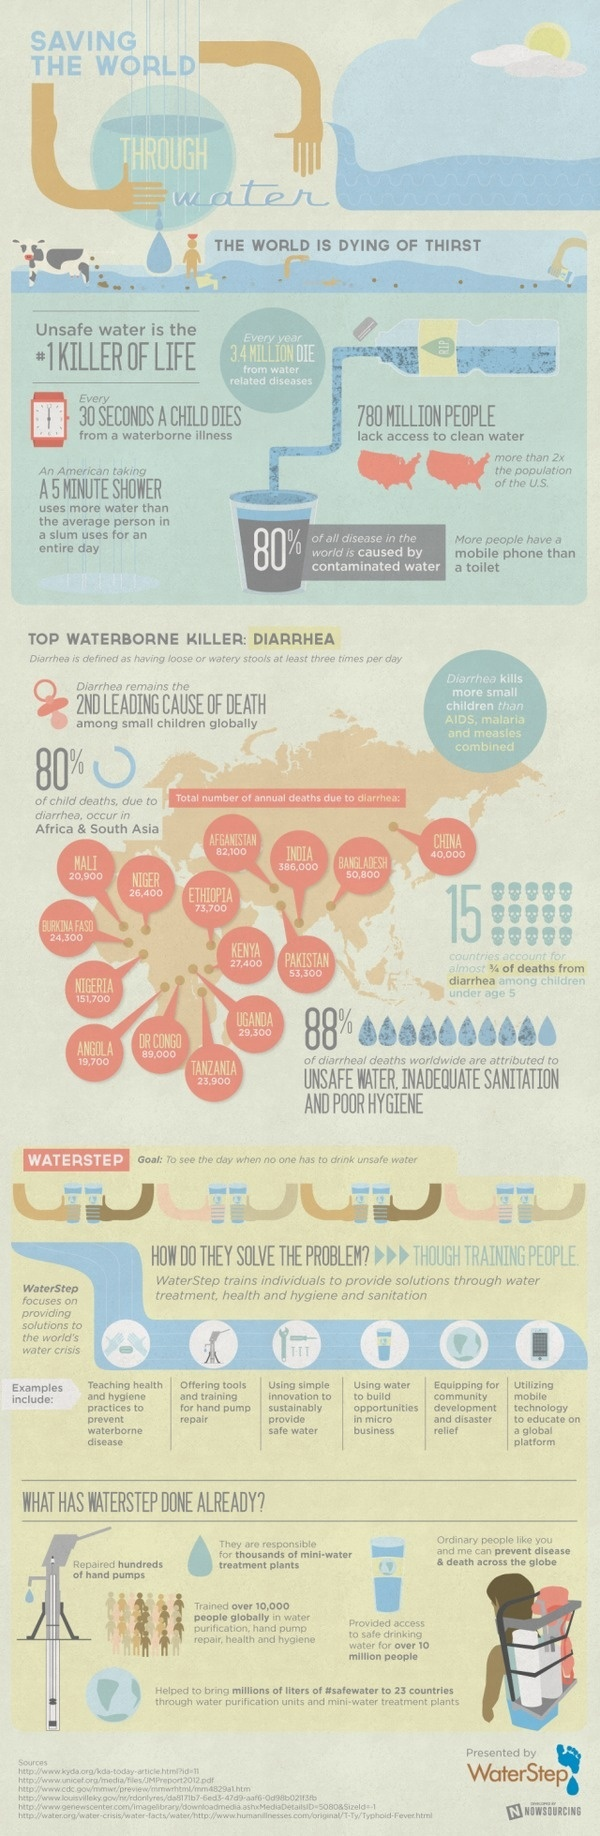 Saving the World Through Water [infographic] #water #saving #infographic #world #thirst #contamination #clean #people #dying #life